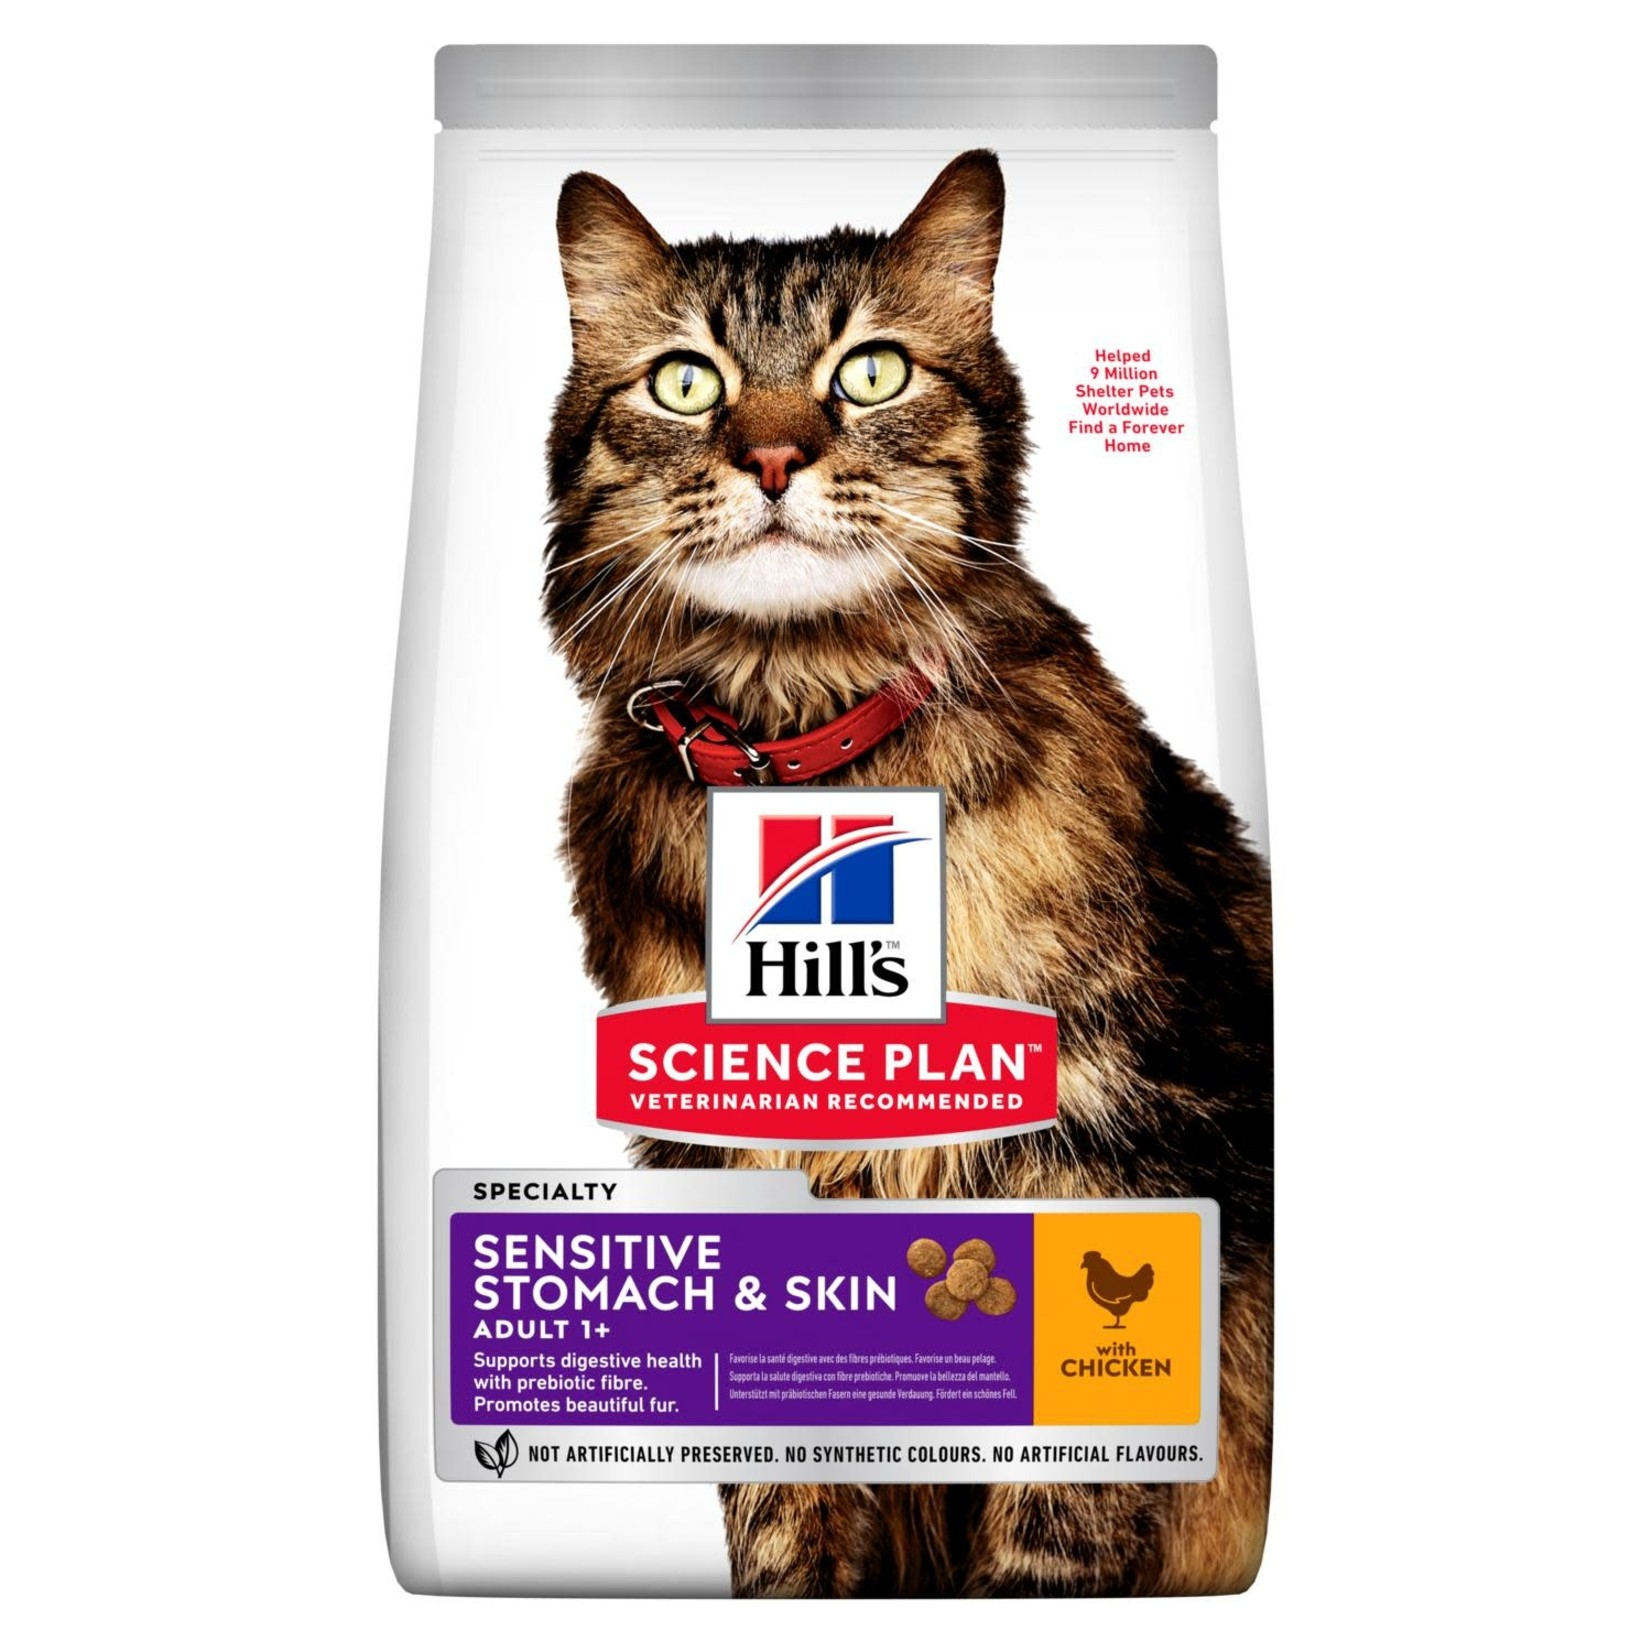 Hill's Science Plan Adult 1+ Sensitive Stomach & Skin Cat Dry Food, Chicken